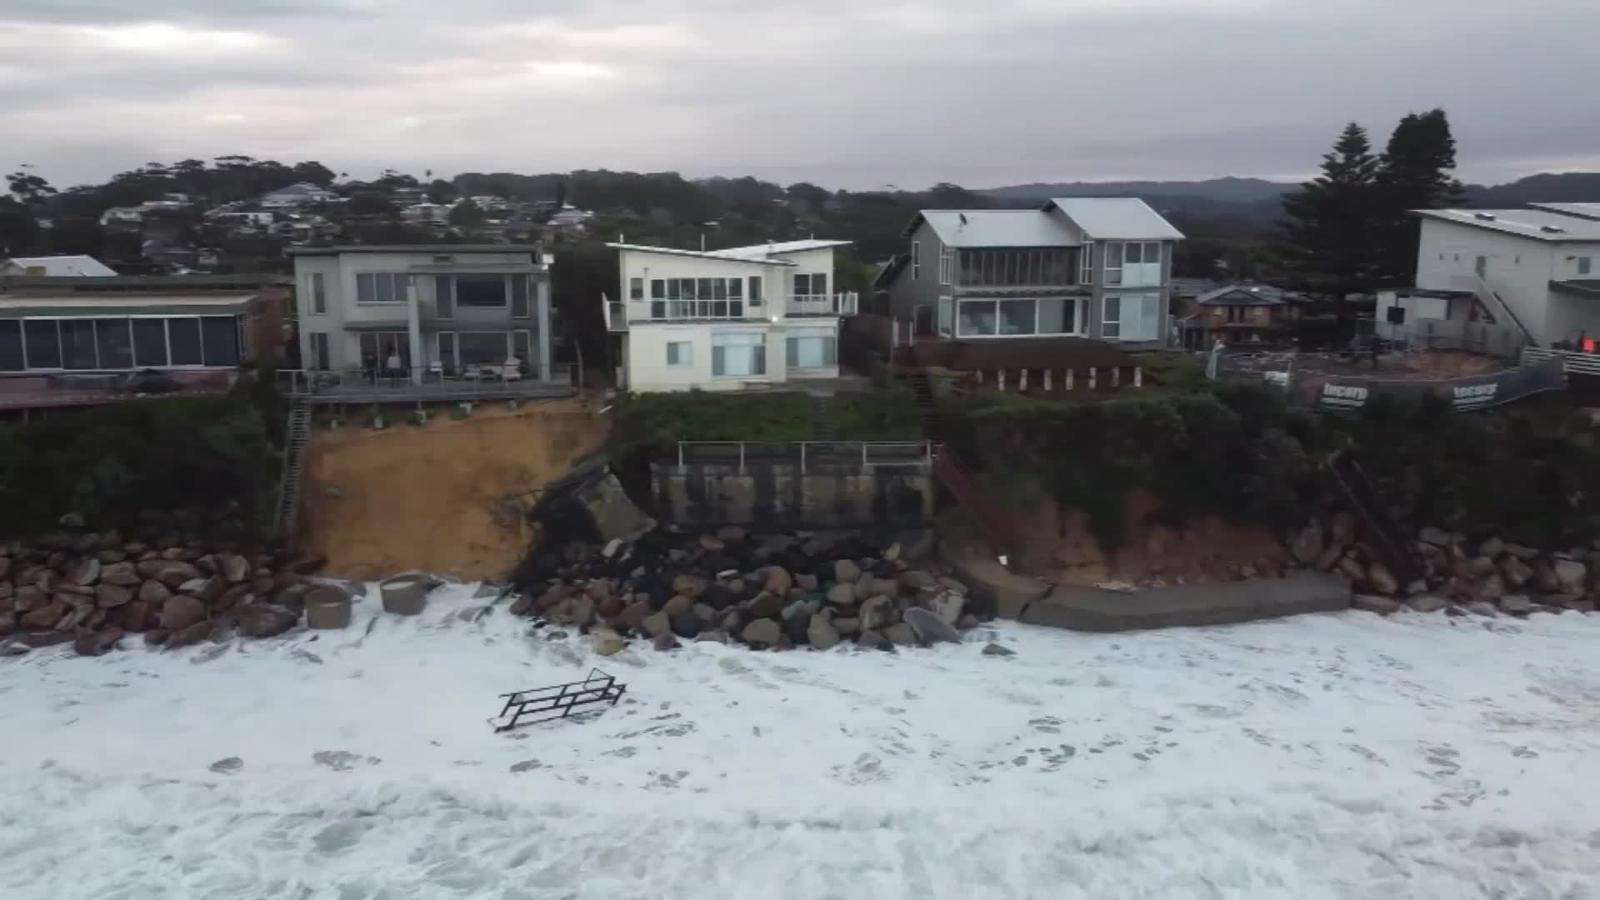 Luxury Homes In Australia Are Falling Into The Ocean Due To Coastal Erosion Cnn